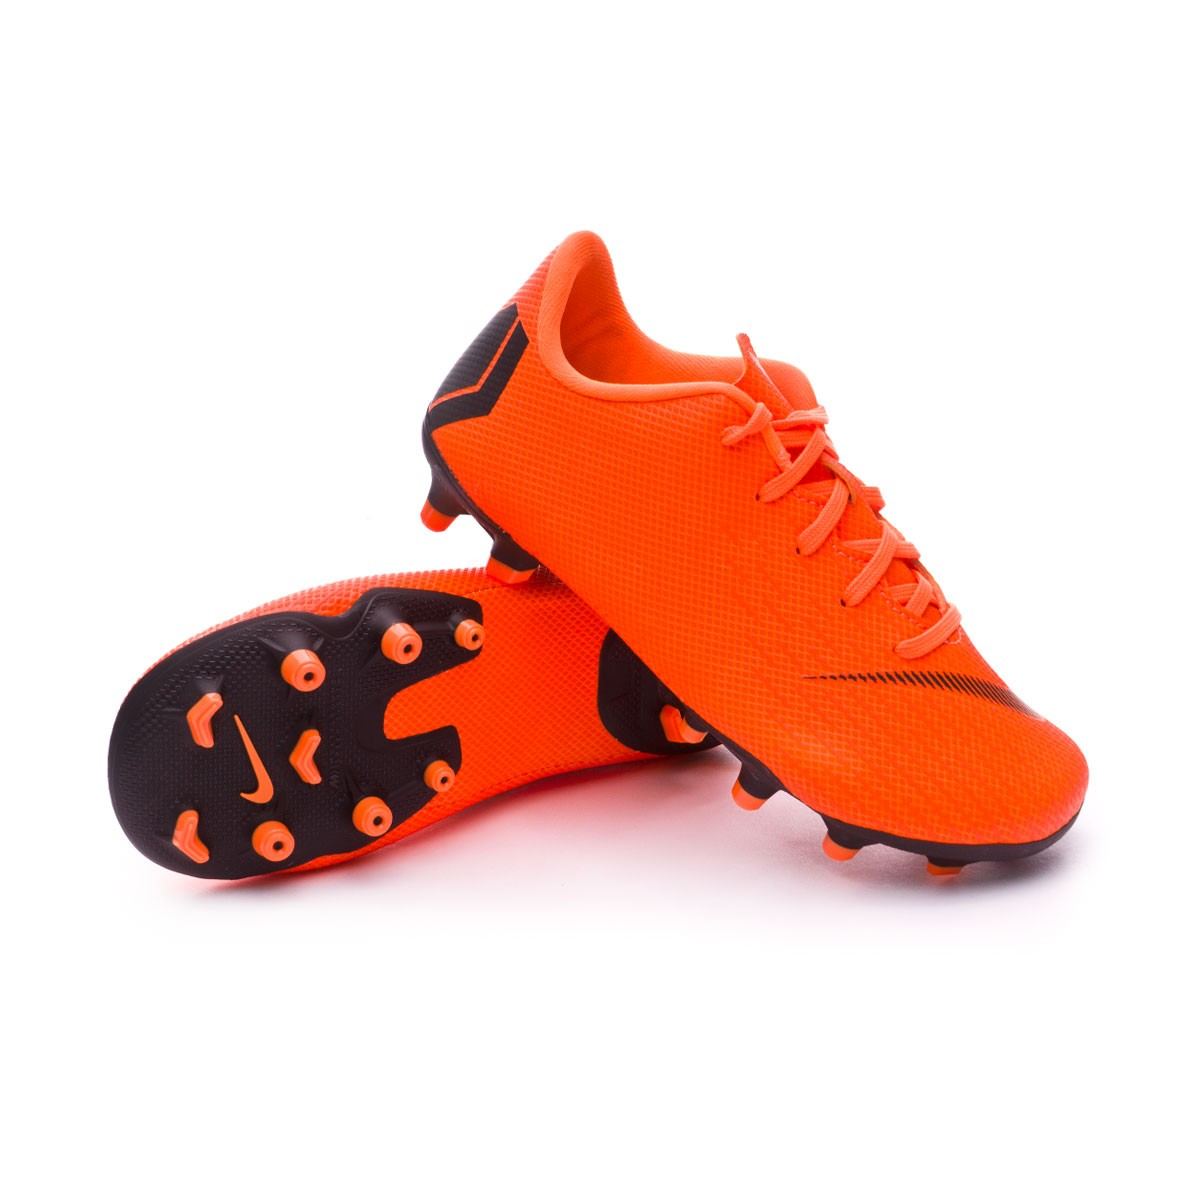 Boot Nike Kids Mercurial Vapor XII Academy PS MG Total orange-Black ... 92f354c8cb8